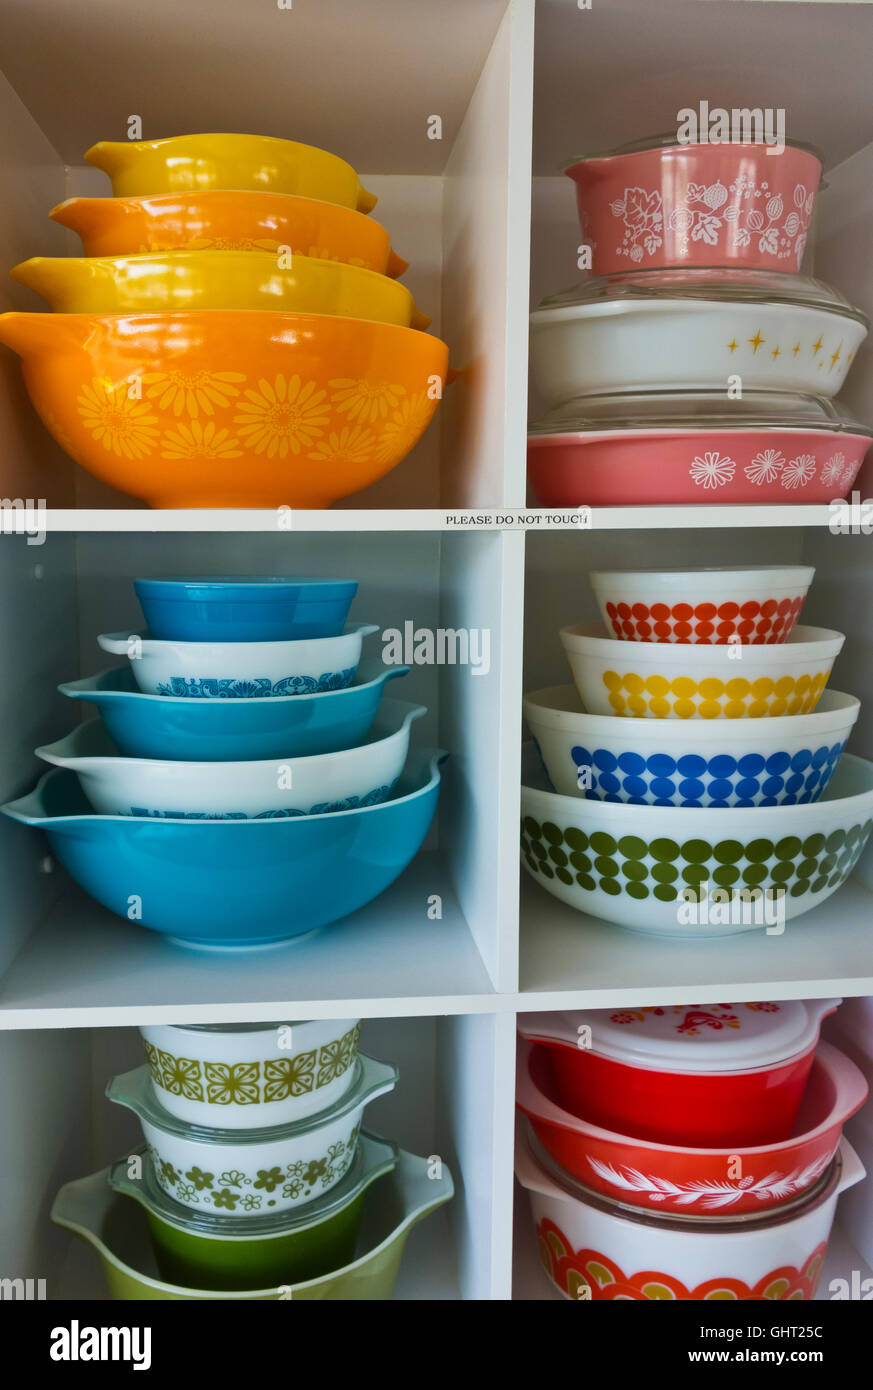 colourful-collection-of-vintage-corningware-bowls-on-display-on-a-GHT25C.jpg